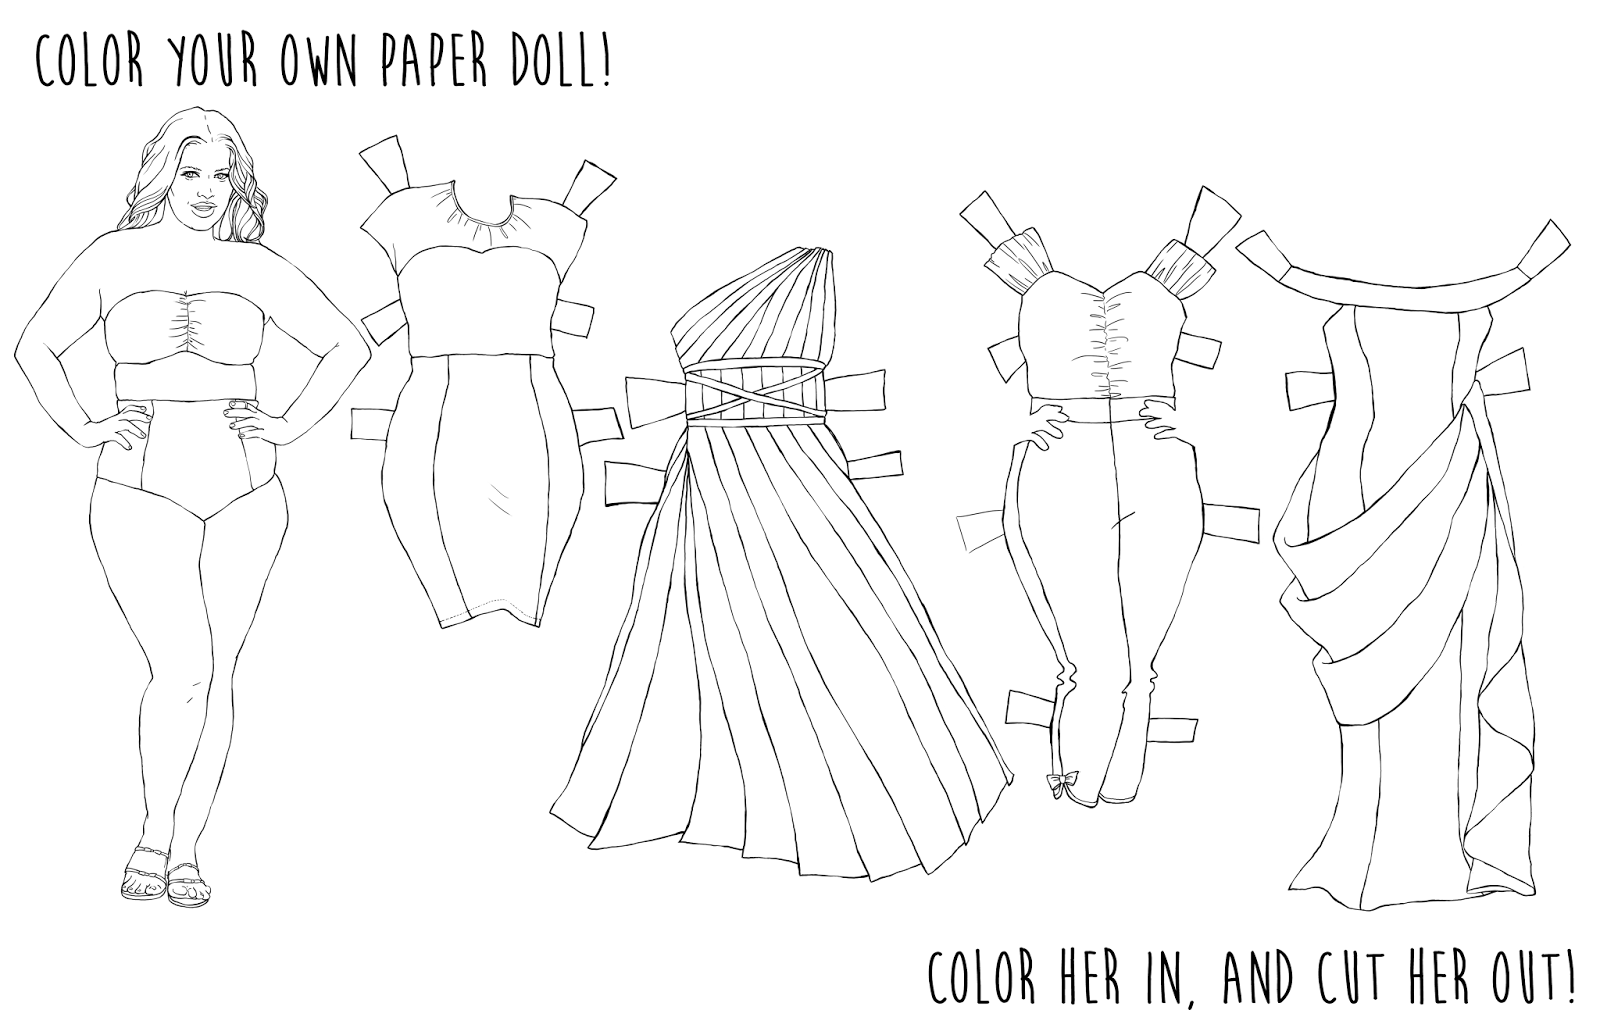 The Spinsterhood Diaries: Friday Fun: Color Your Own Paper